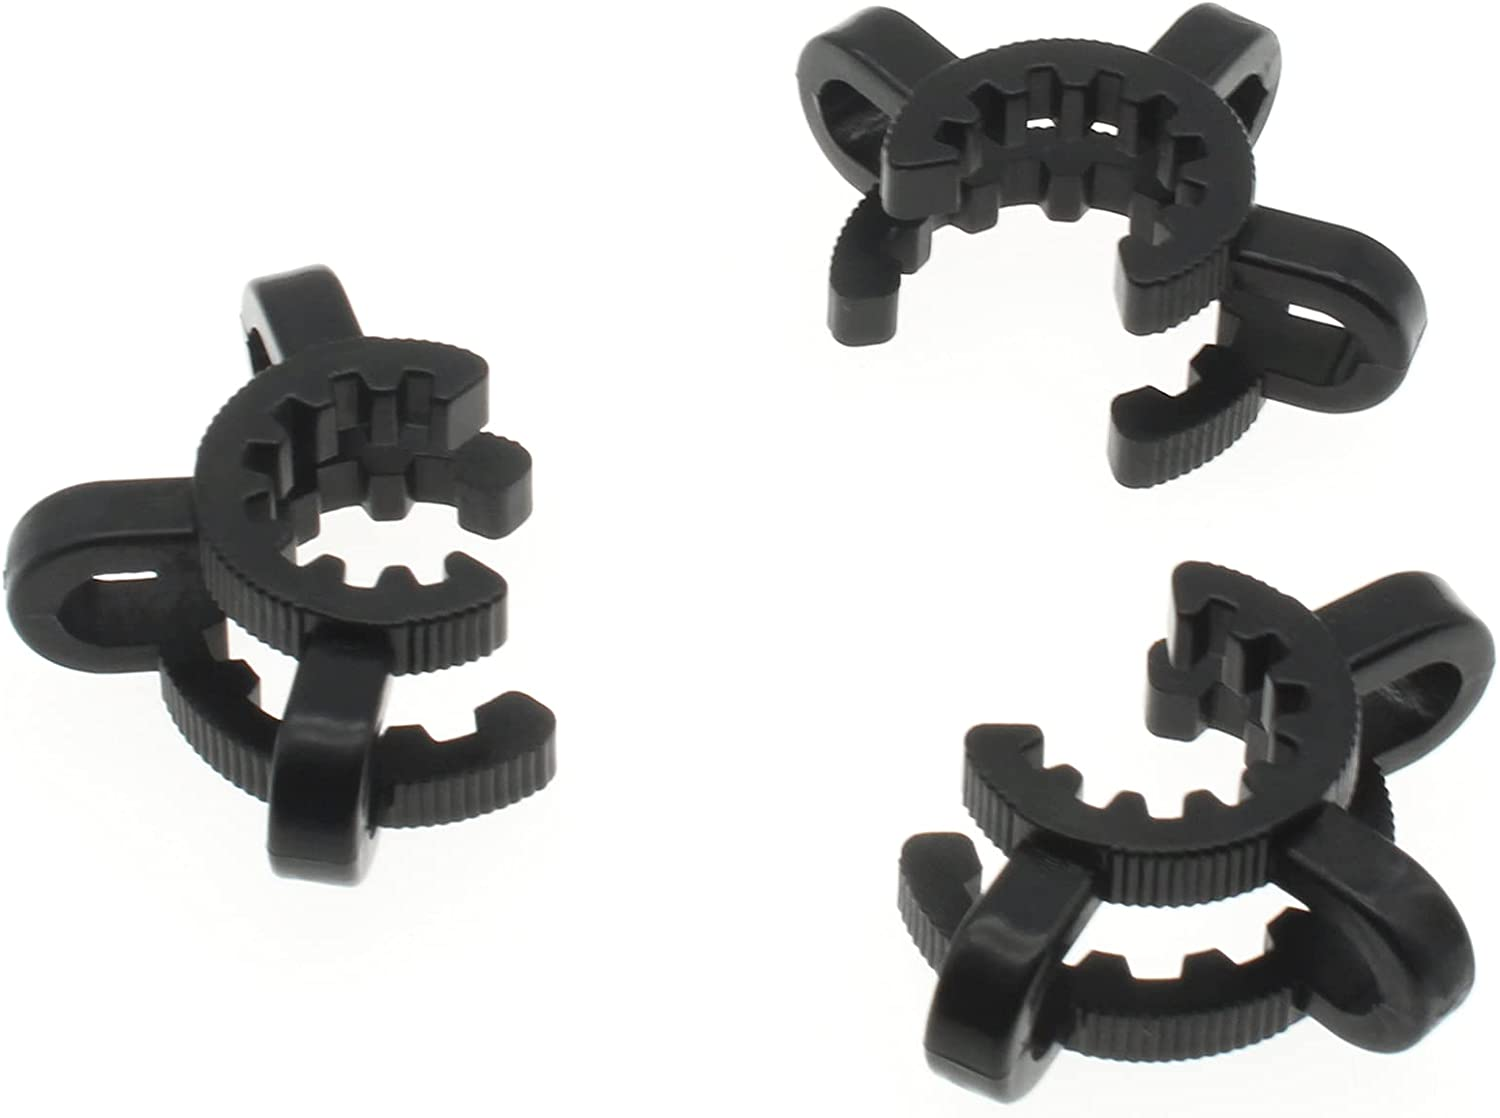 LBTODH 4 Pcs Laboratory Keck Luxury goods Clamps for 14mm Plastic Clips low-pricing Joint